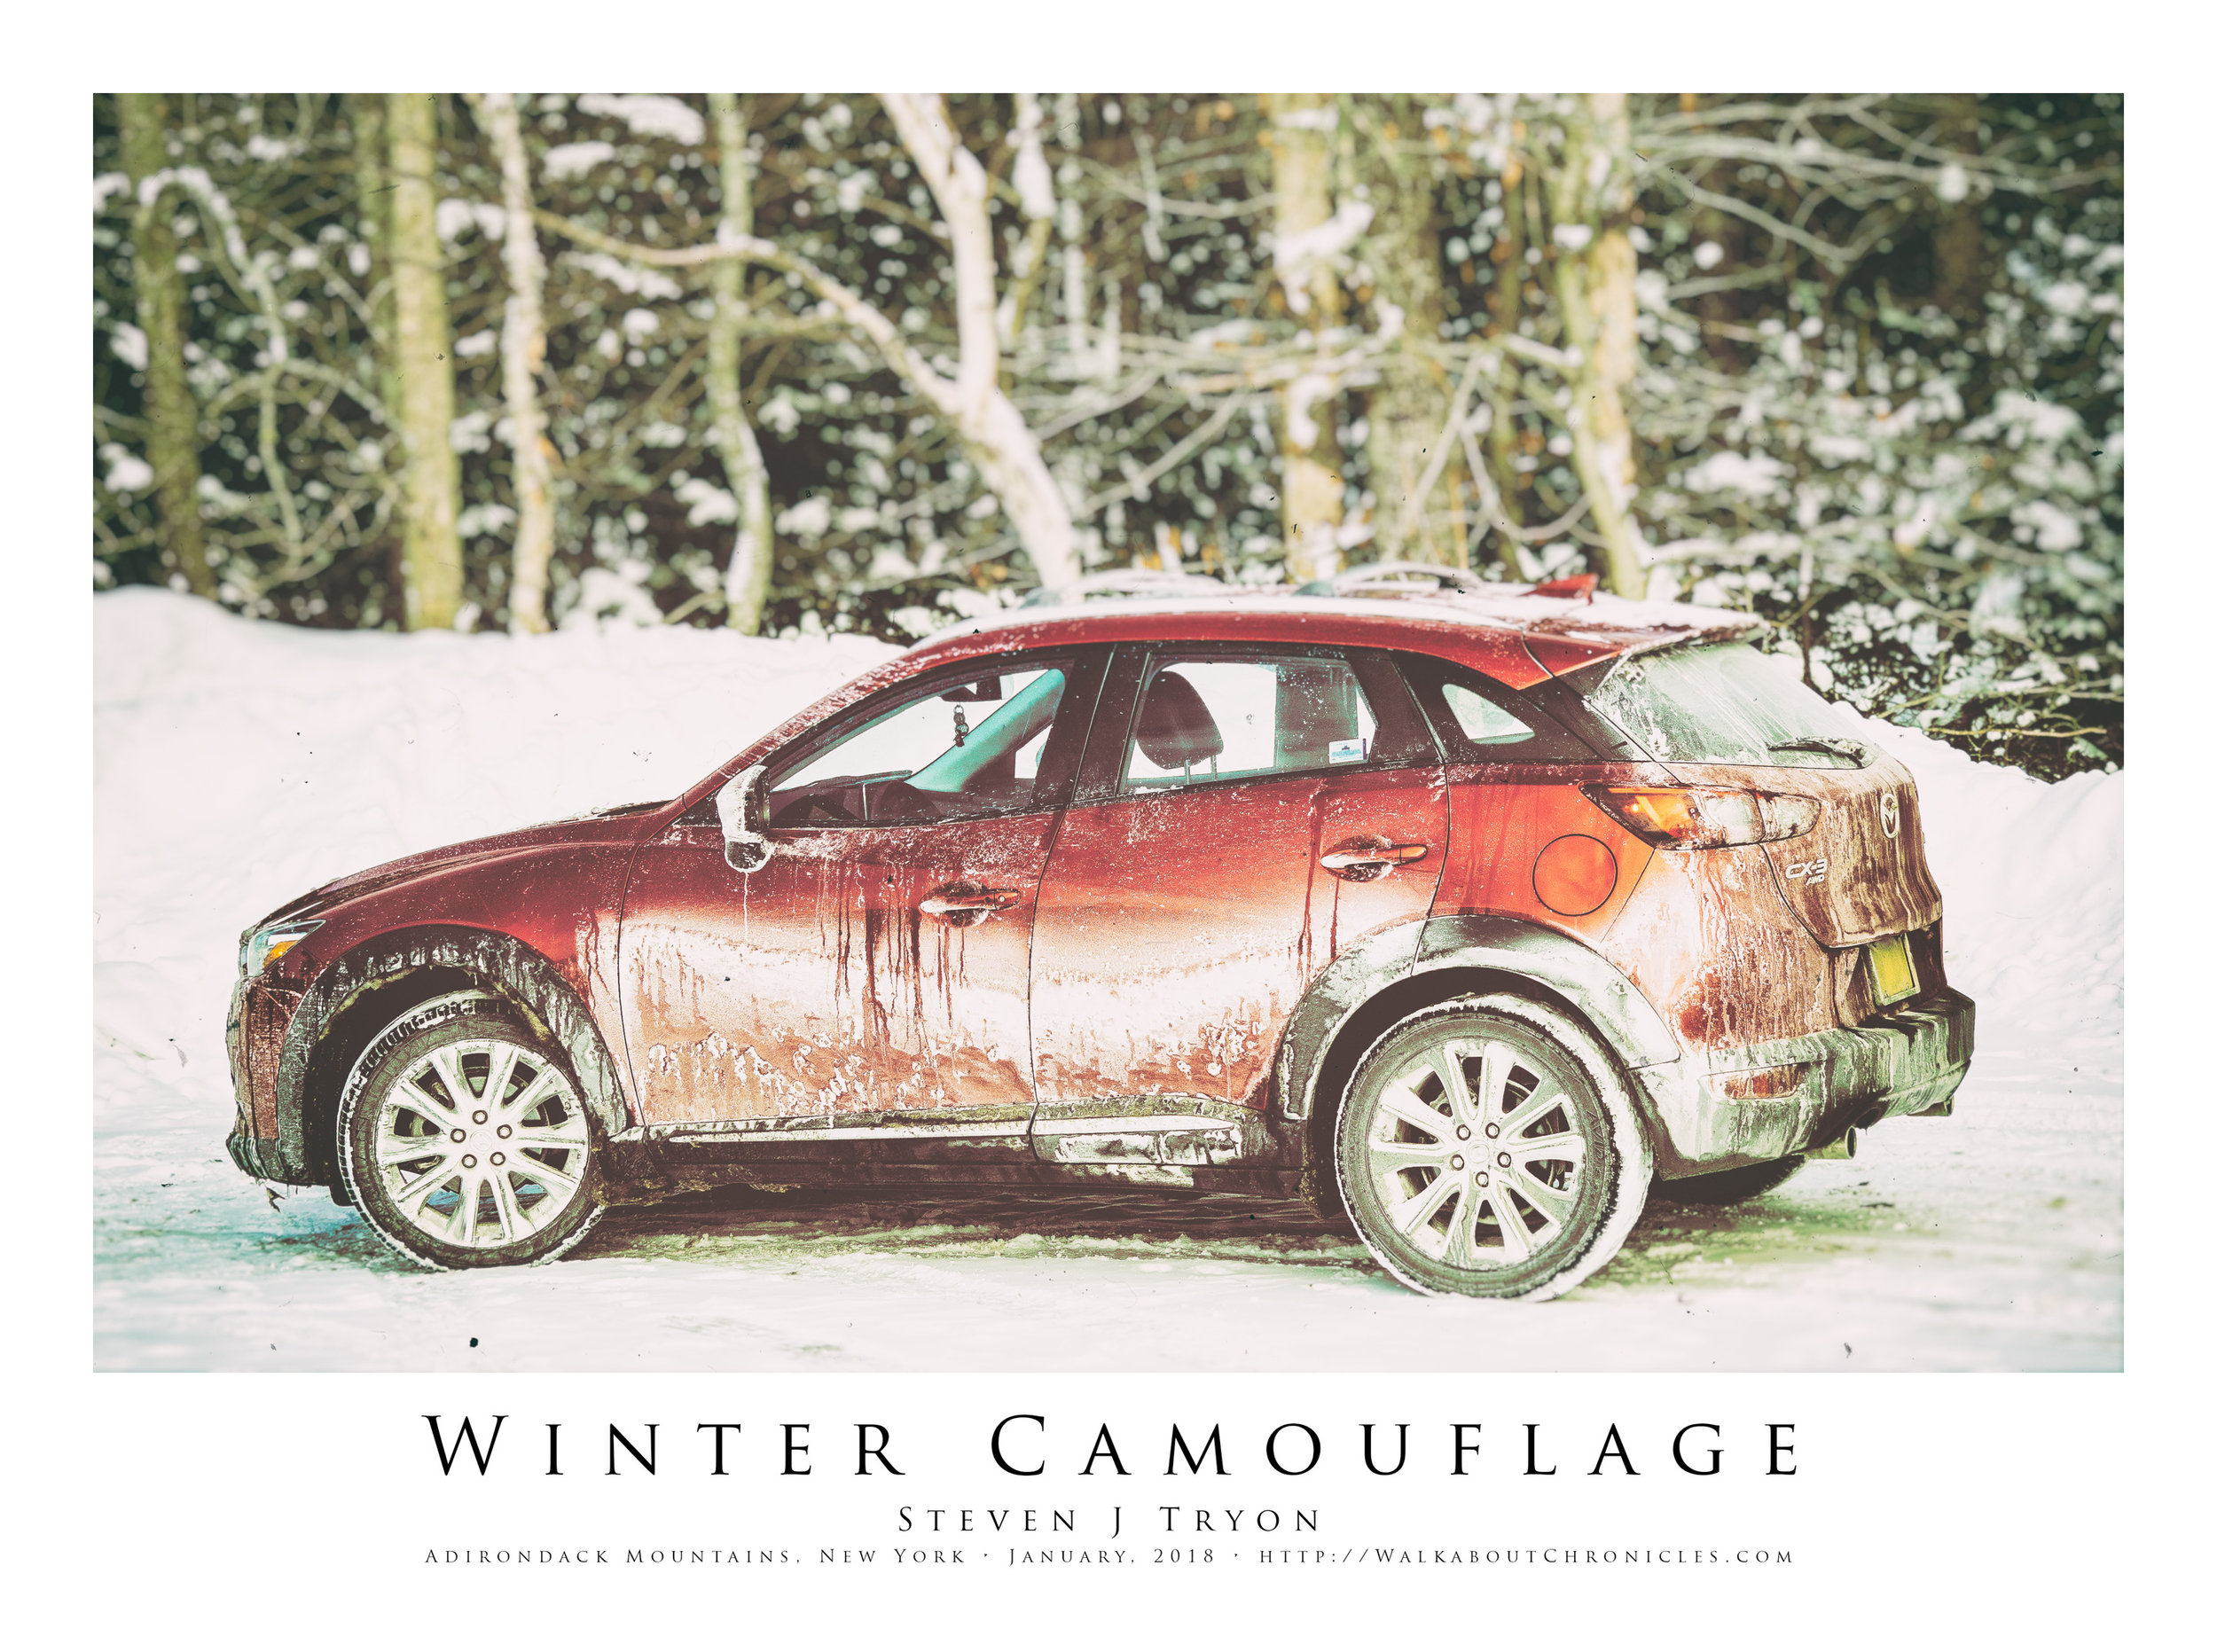 Winter Camouflage